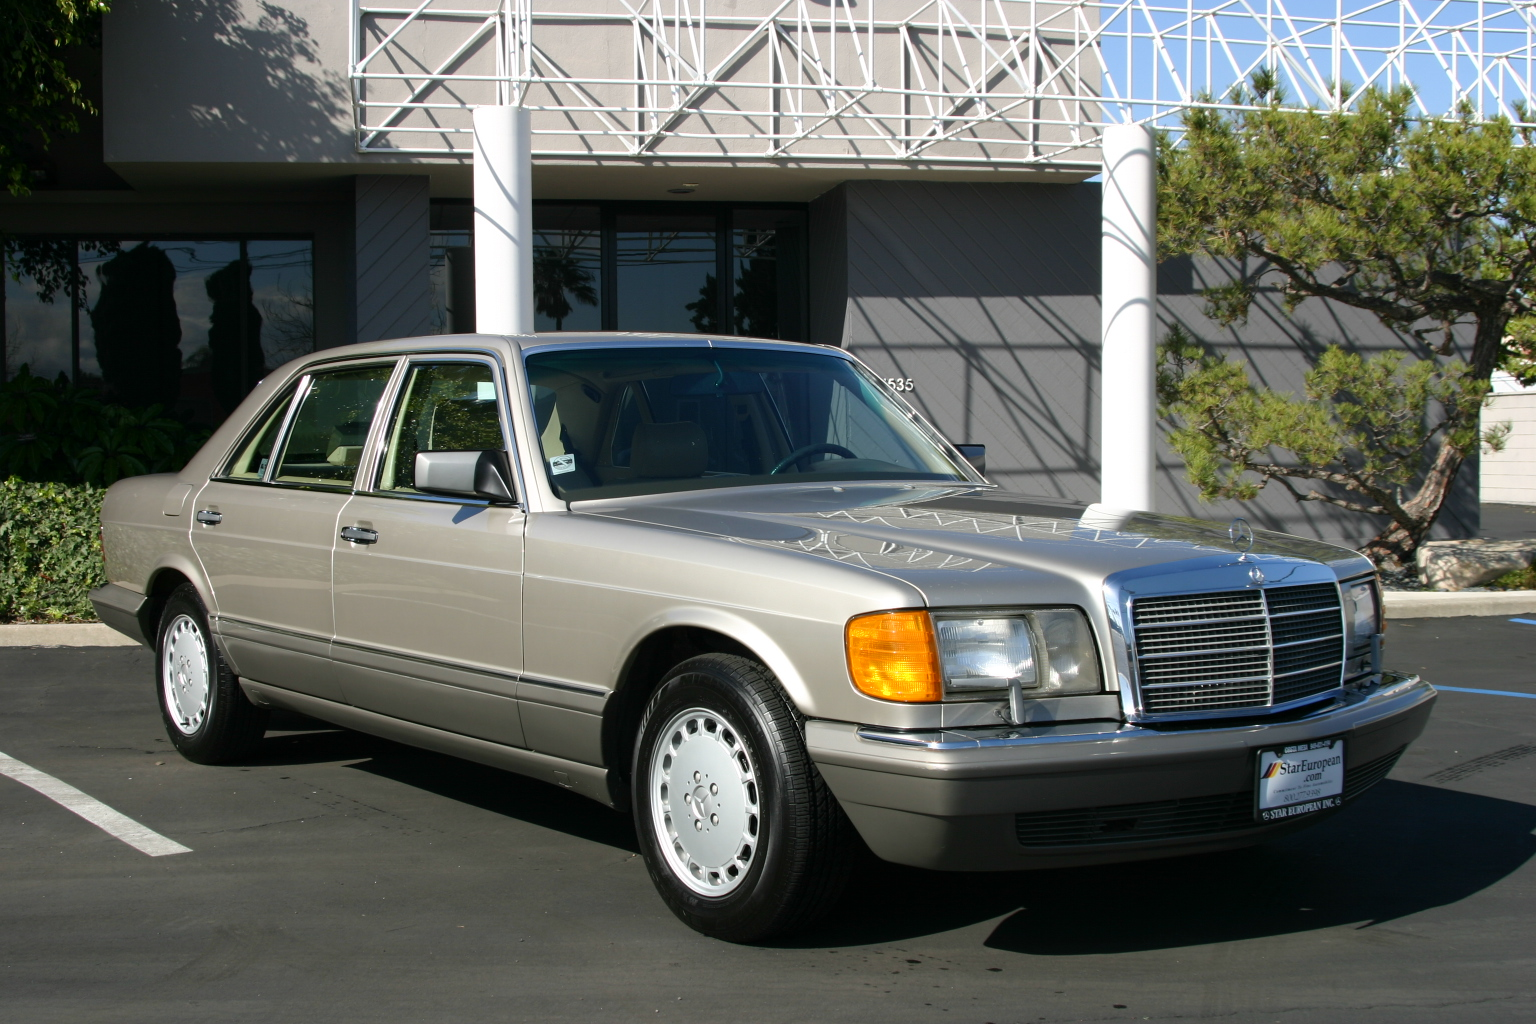 Mercedes benz 300 sdl photos reviews news specs buy car for Mercedes benz glowing star